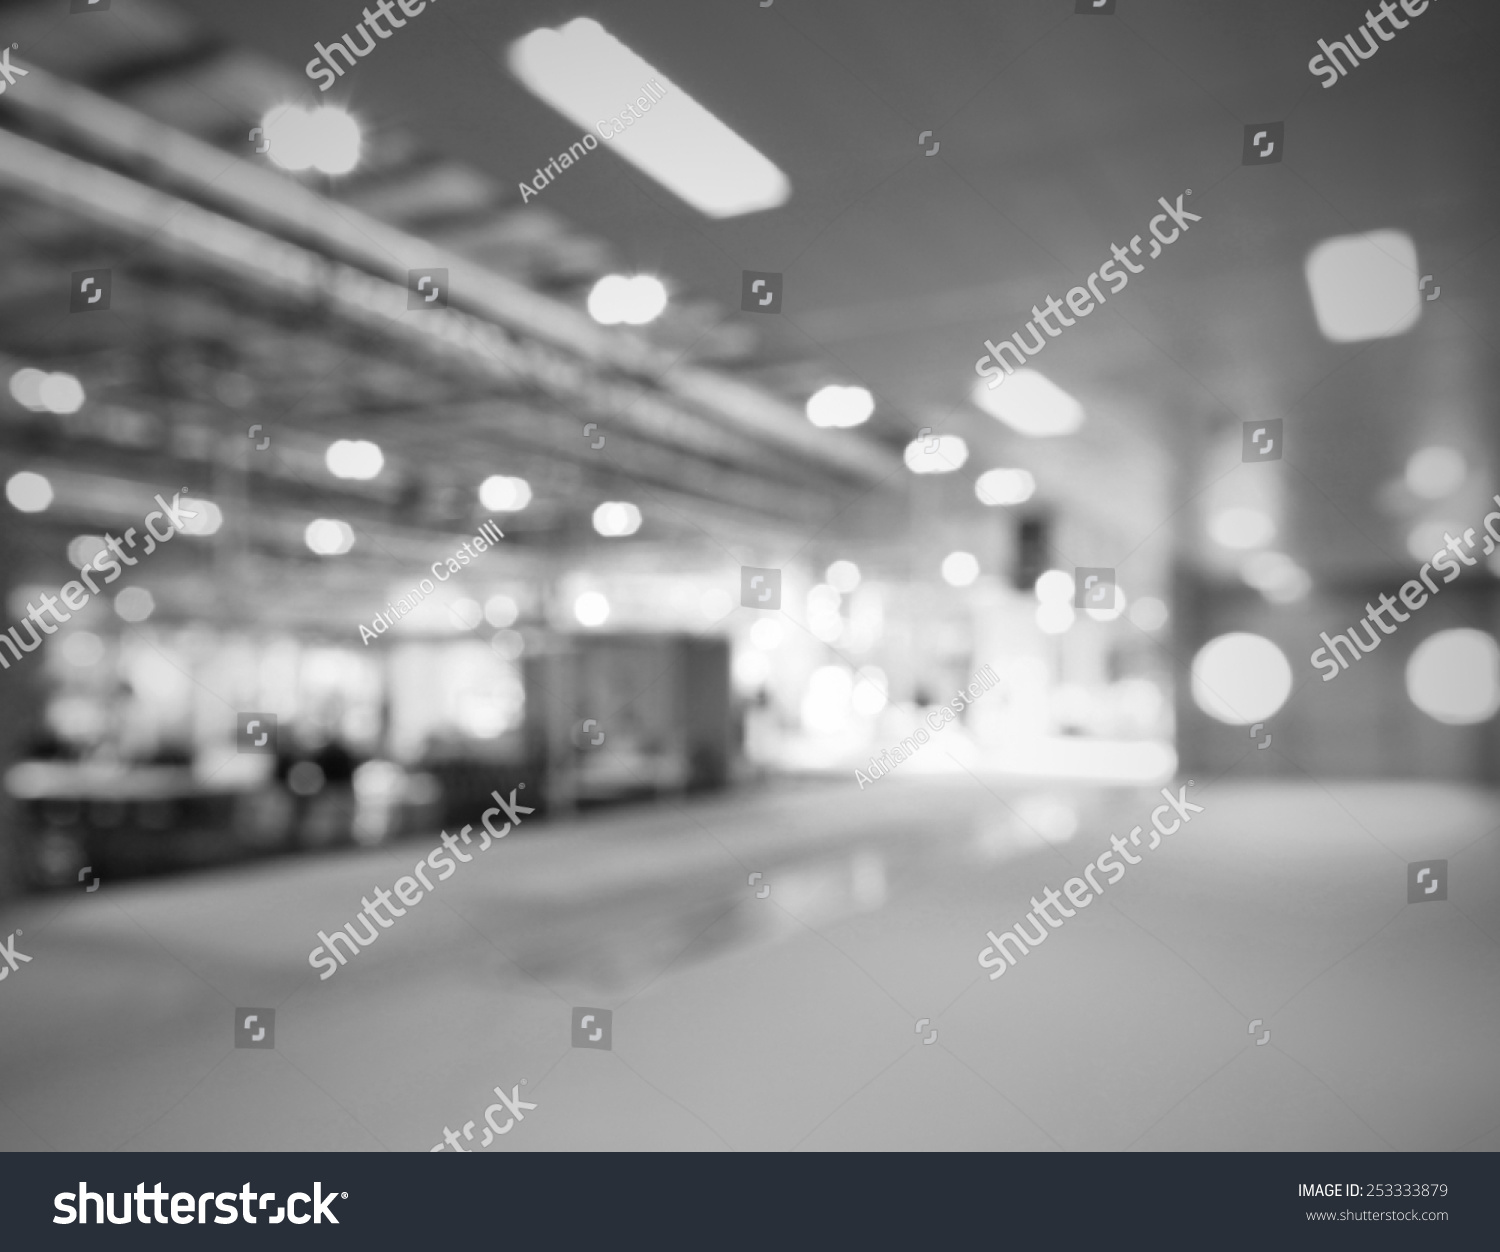 Trade Show Lights Background Intentionally Blurred Editing Post Production Black And White